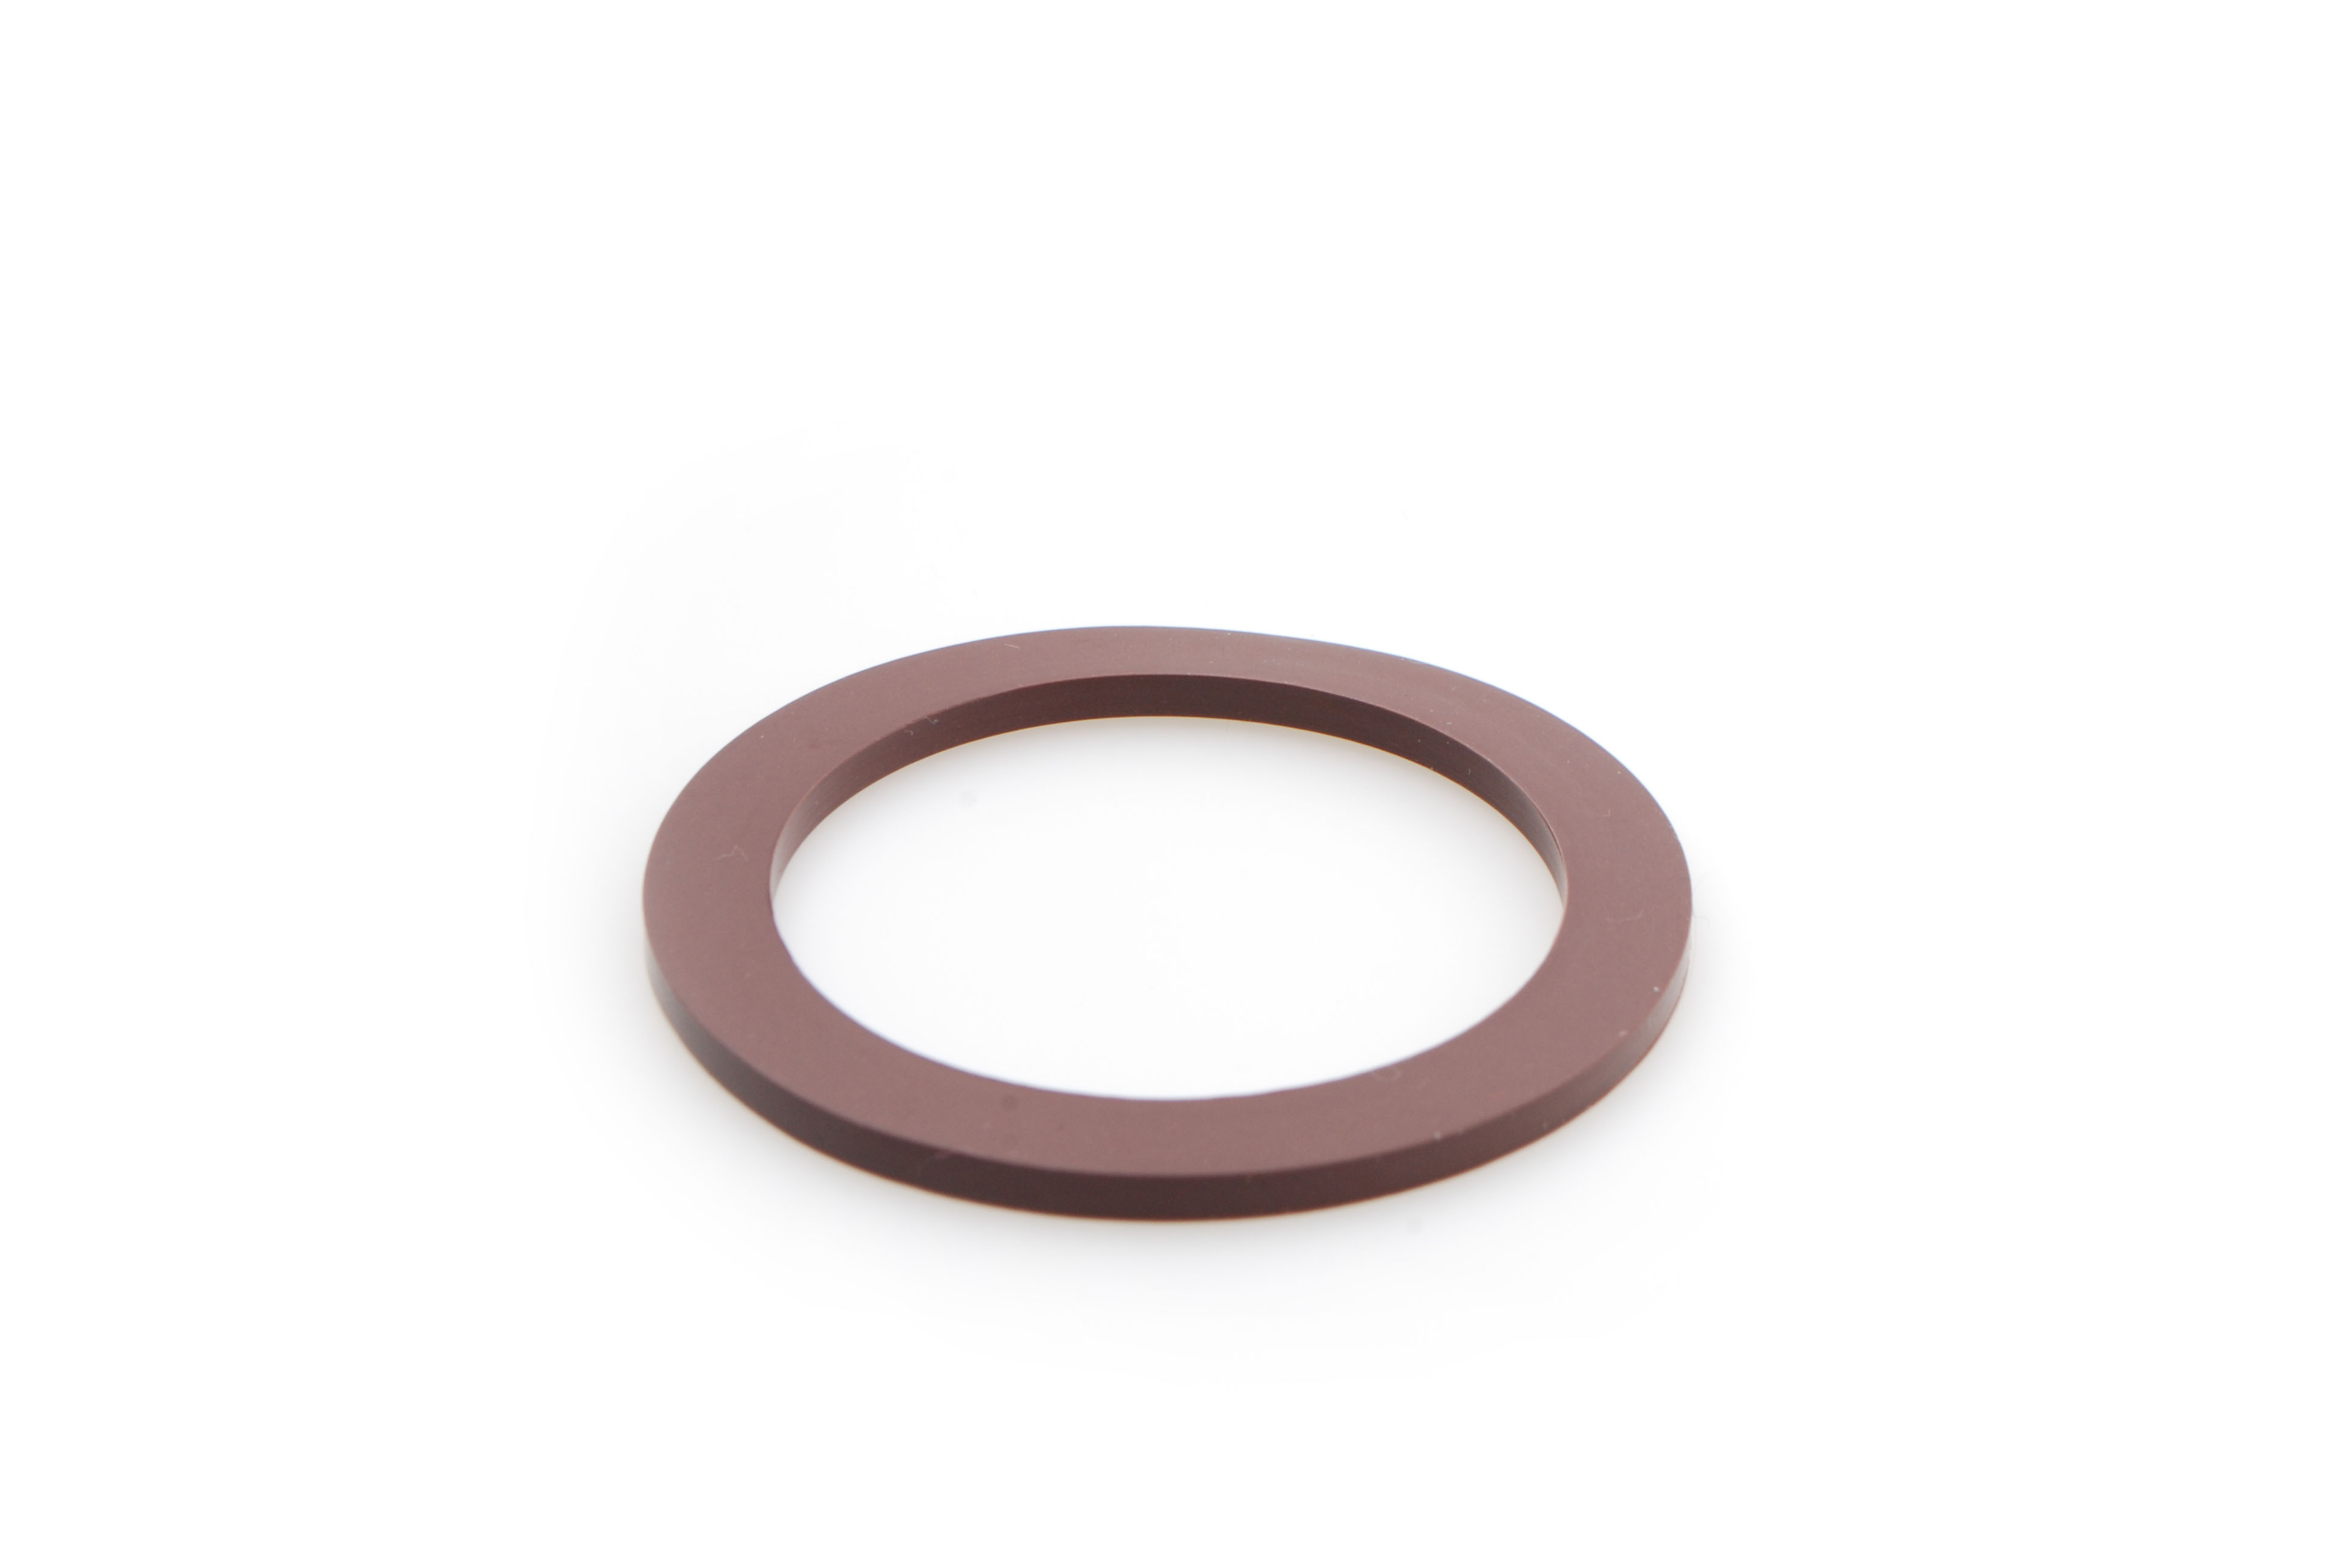 Alessi Rubberring voor ARS09-PL01-A9095-MG26 /3